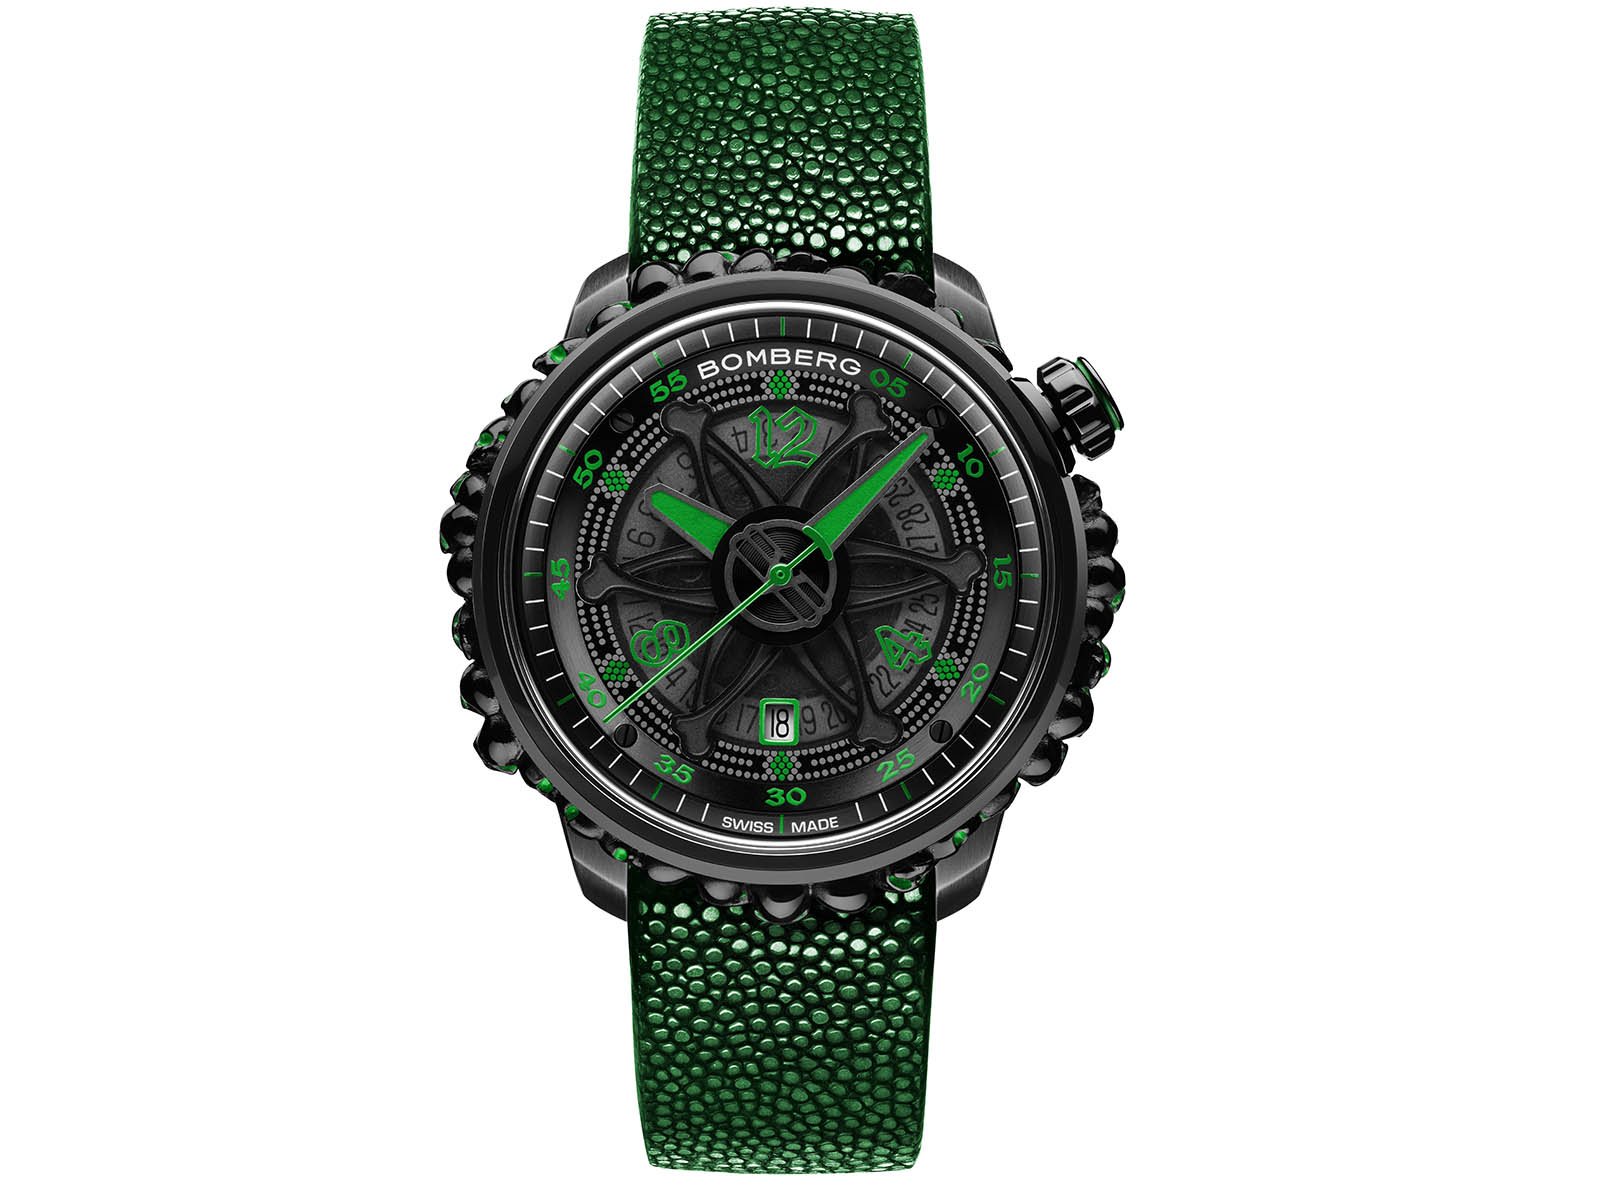 ct43apba-25-3-11-bomberg-gothic-bb-01-automatic-green-catacomb-limited-edition-1.jpg